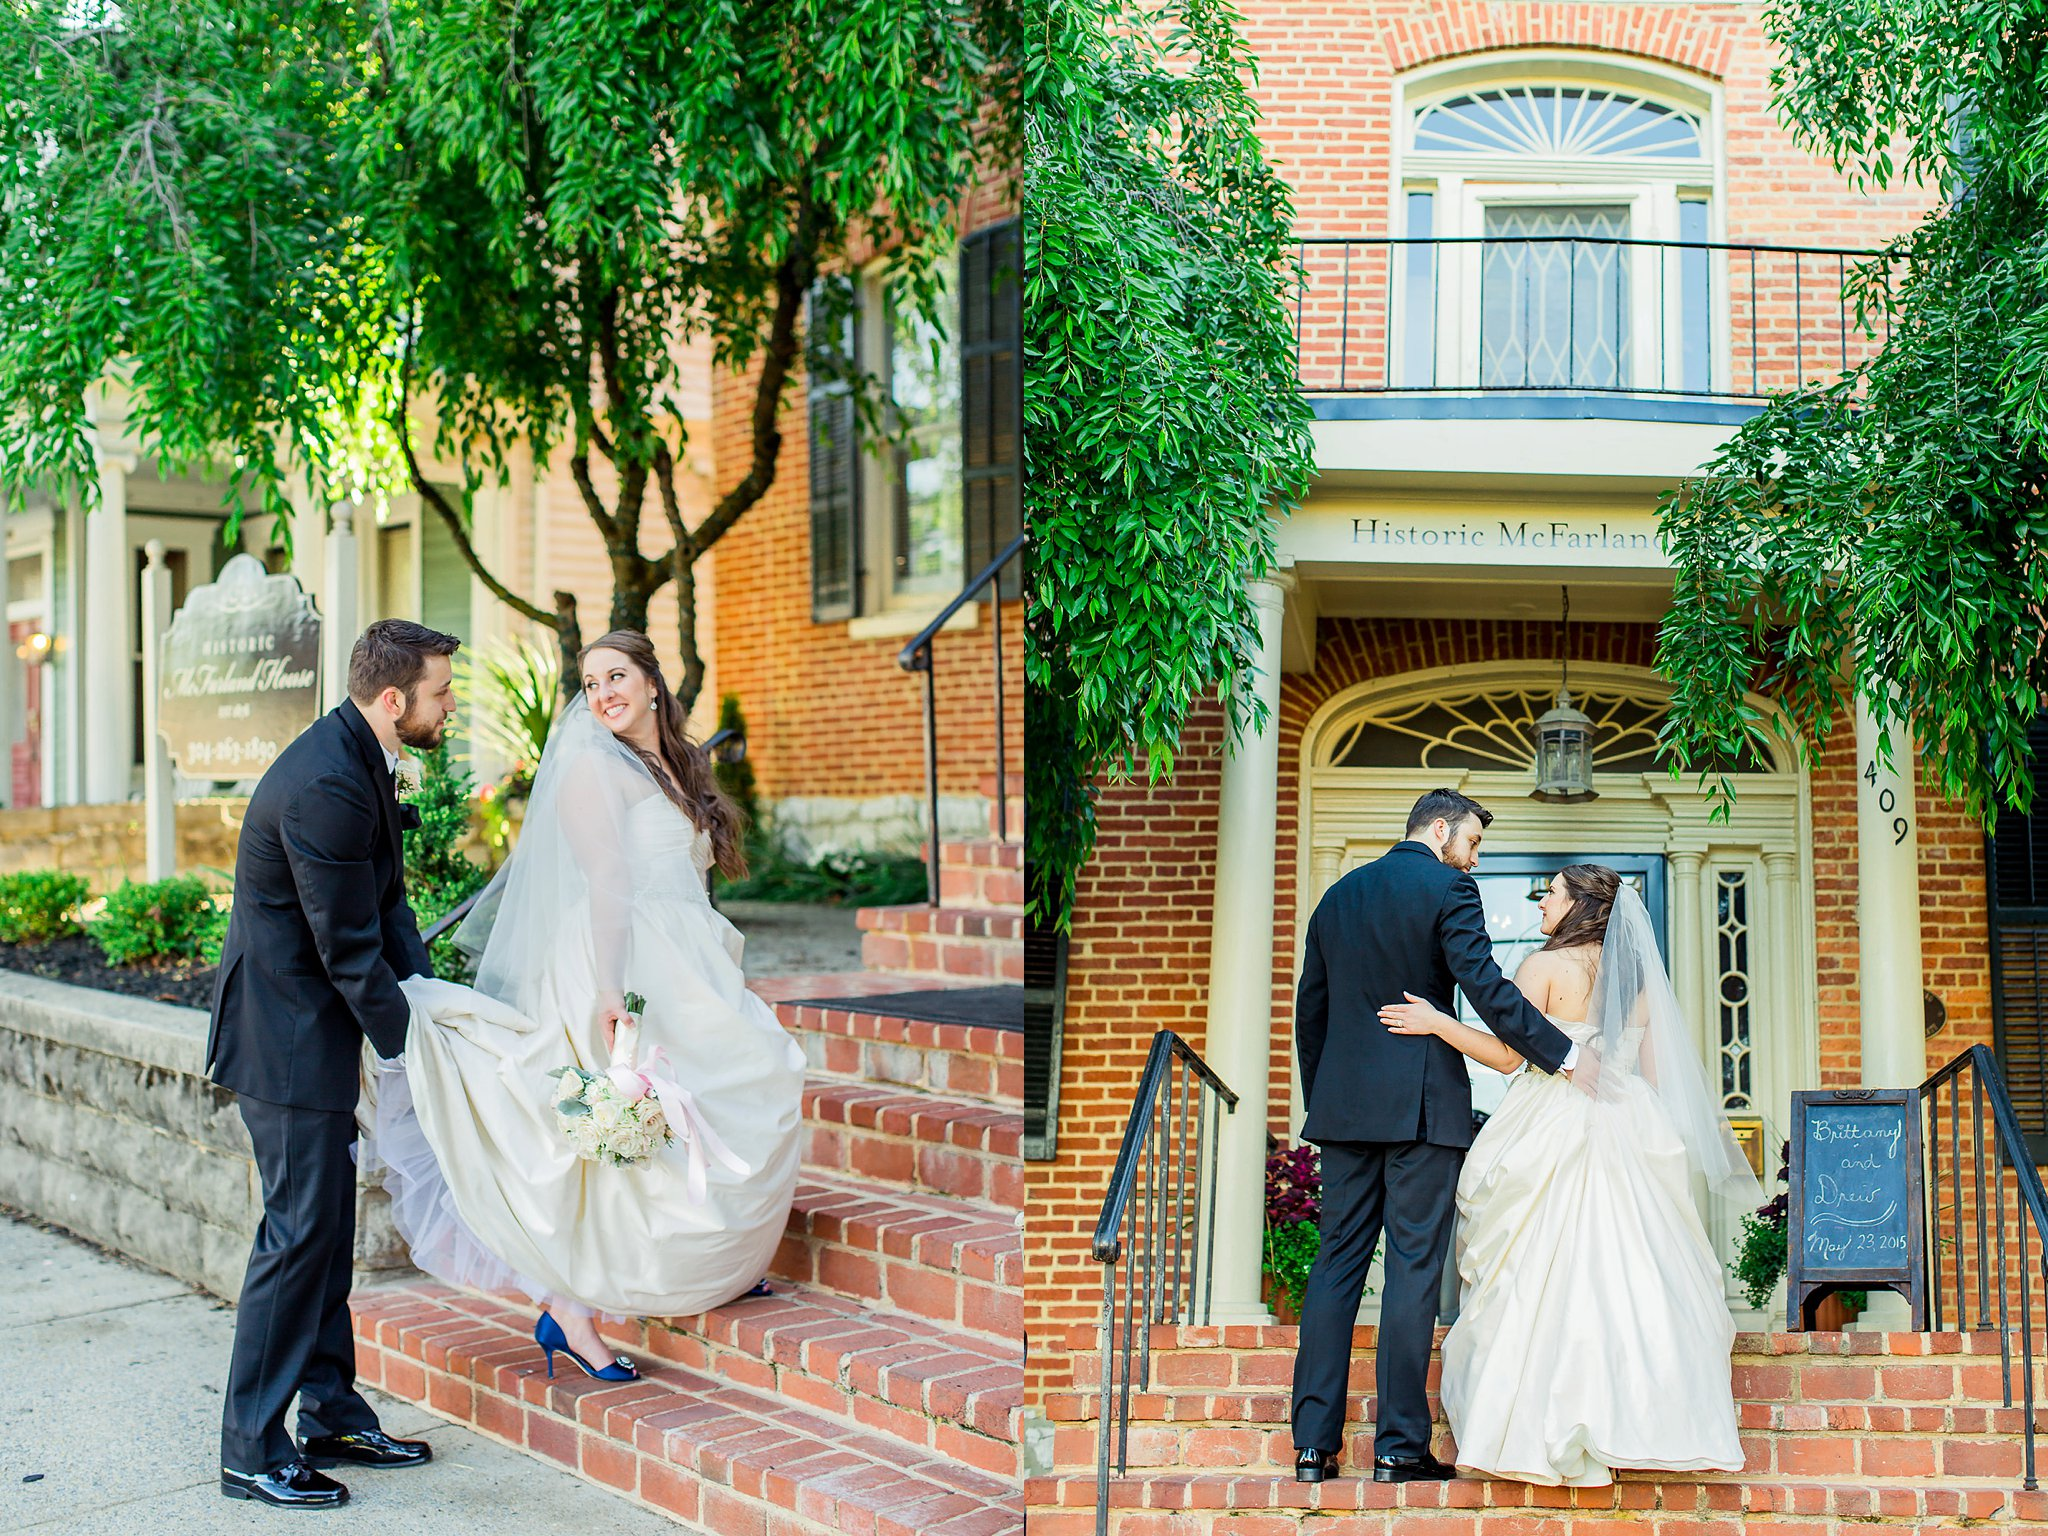 Historic McFarland House Wedding Photos West Virginia Wedding Photographer Brittany and Drew-4122.jpg